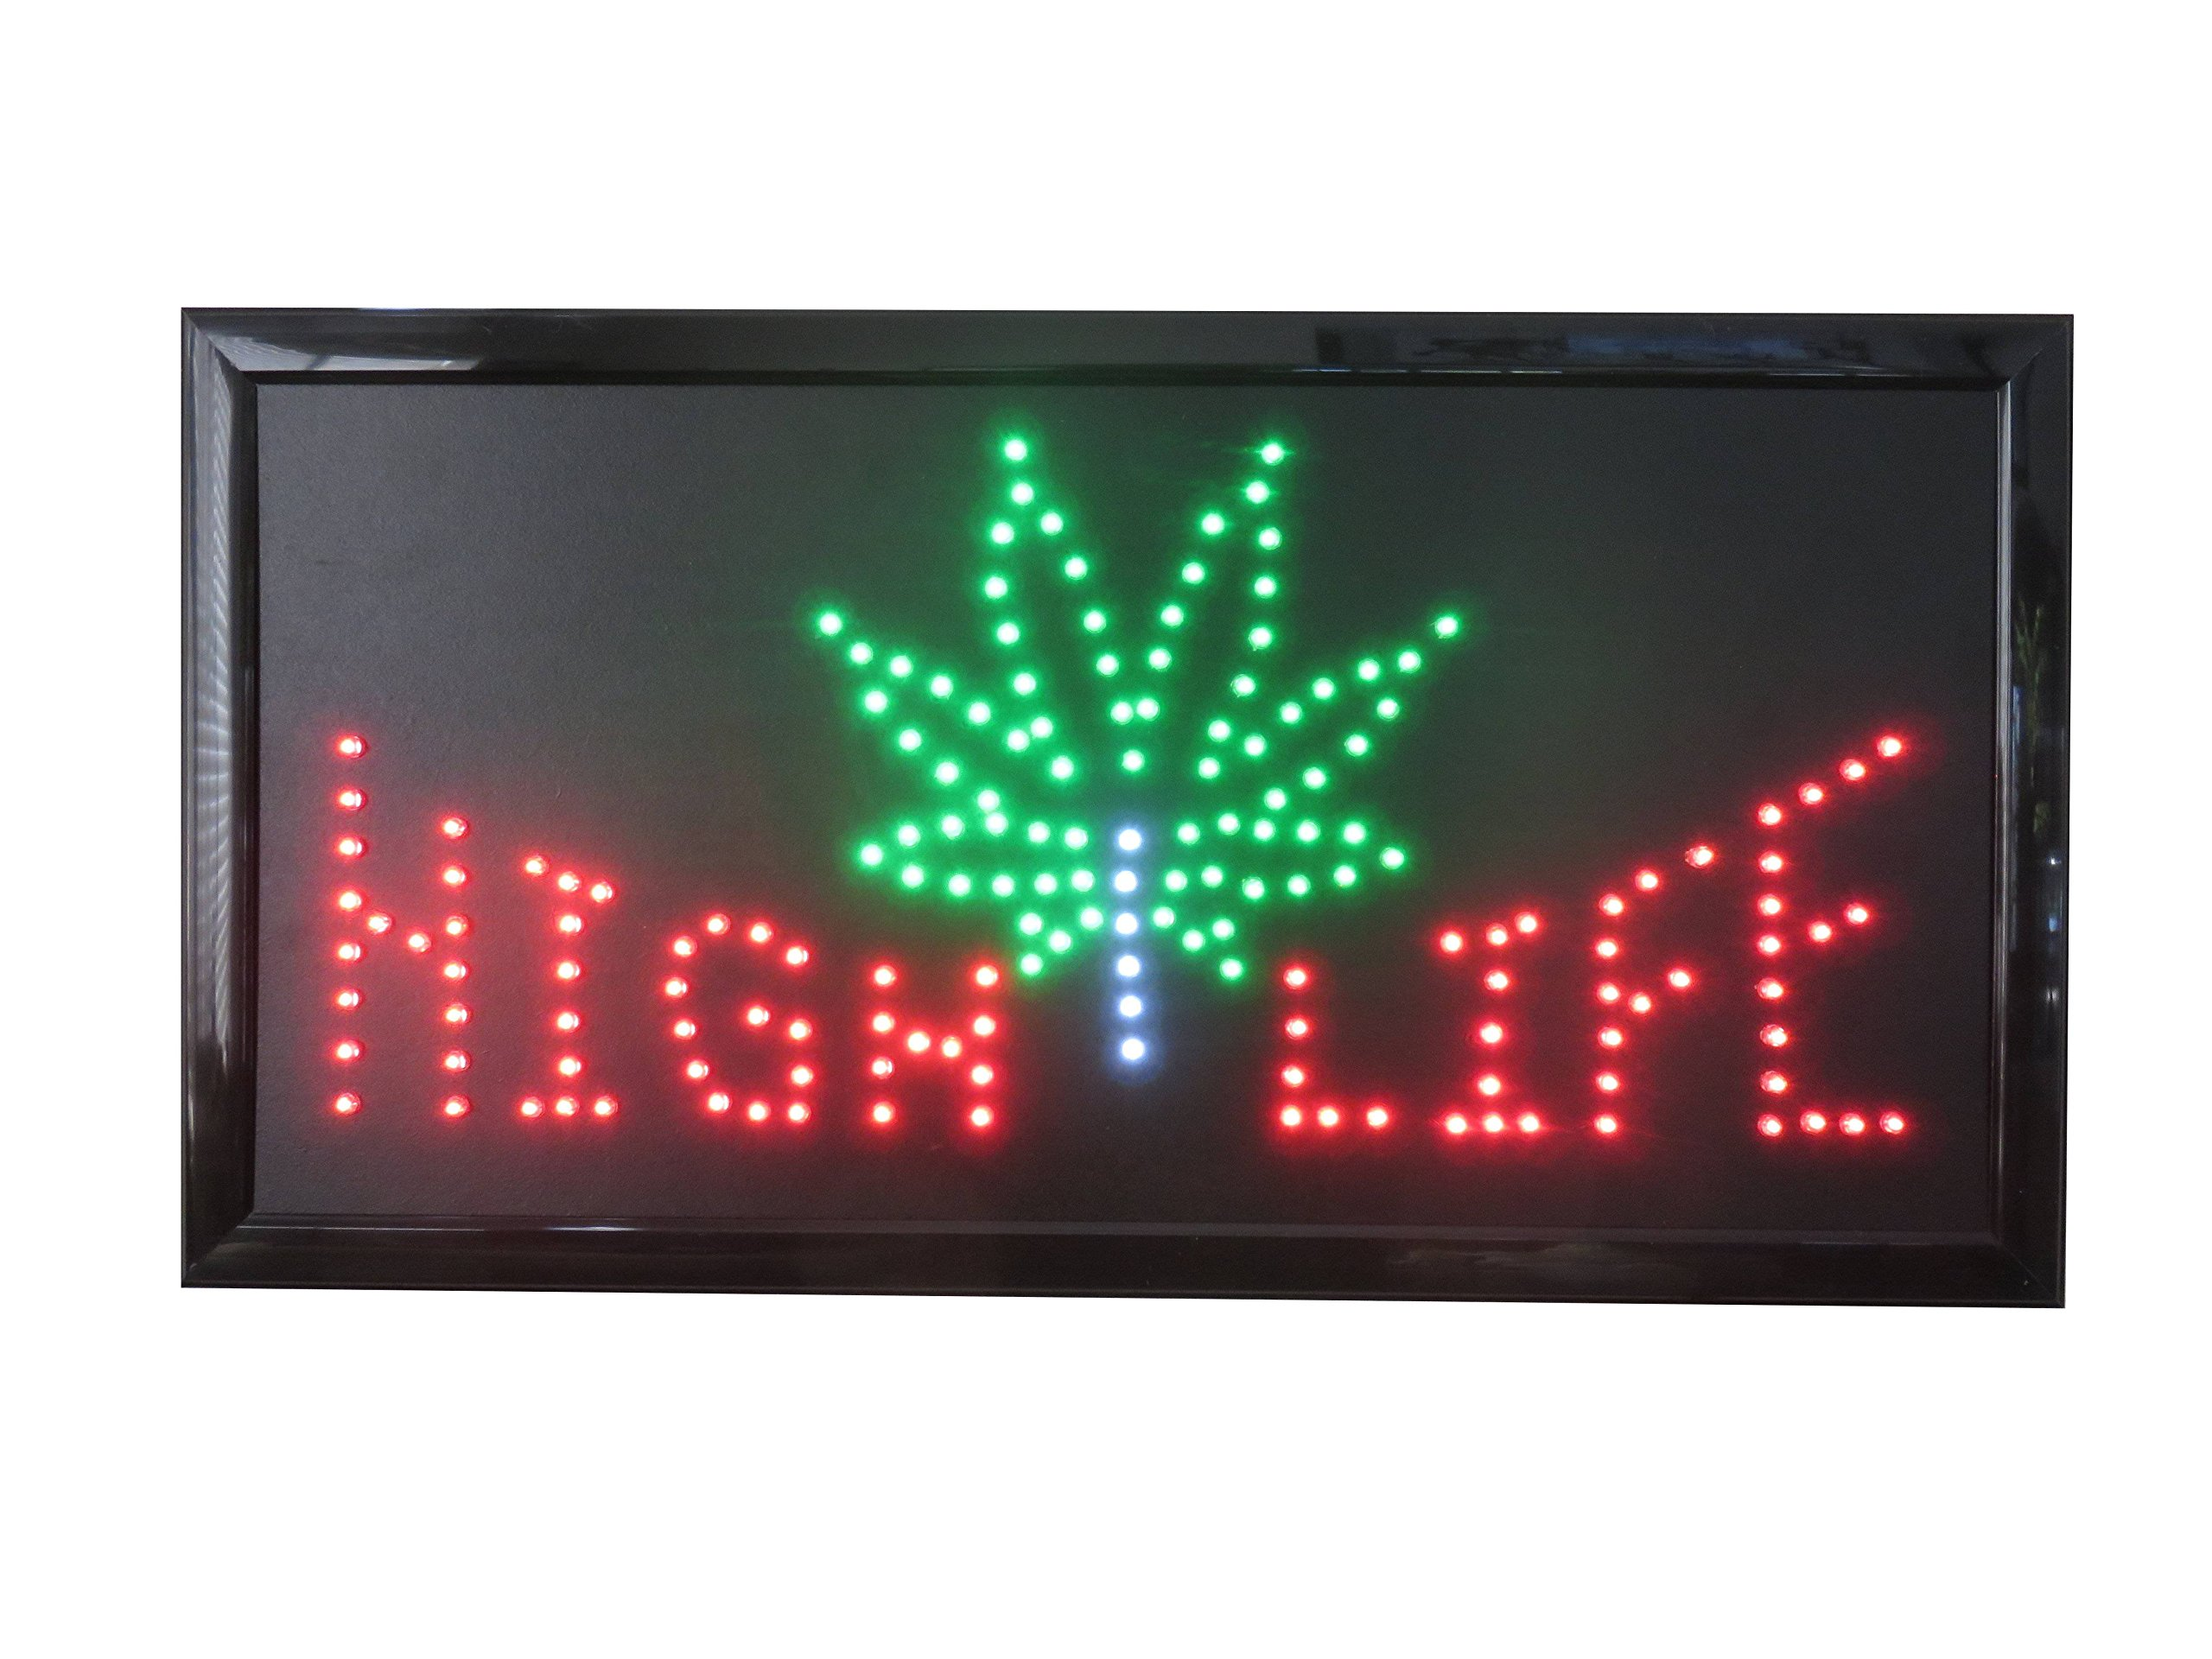 19x10 LED Neon Sign Lighting by Tripact Inc - Single Switch: Power for Business Identification - High Life